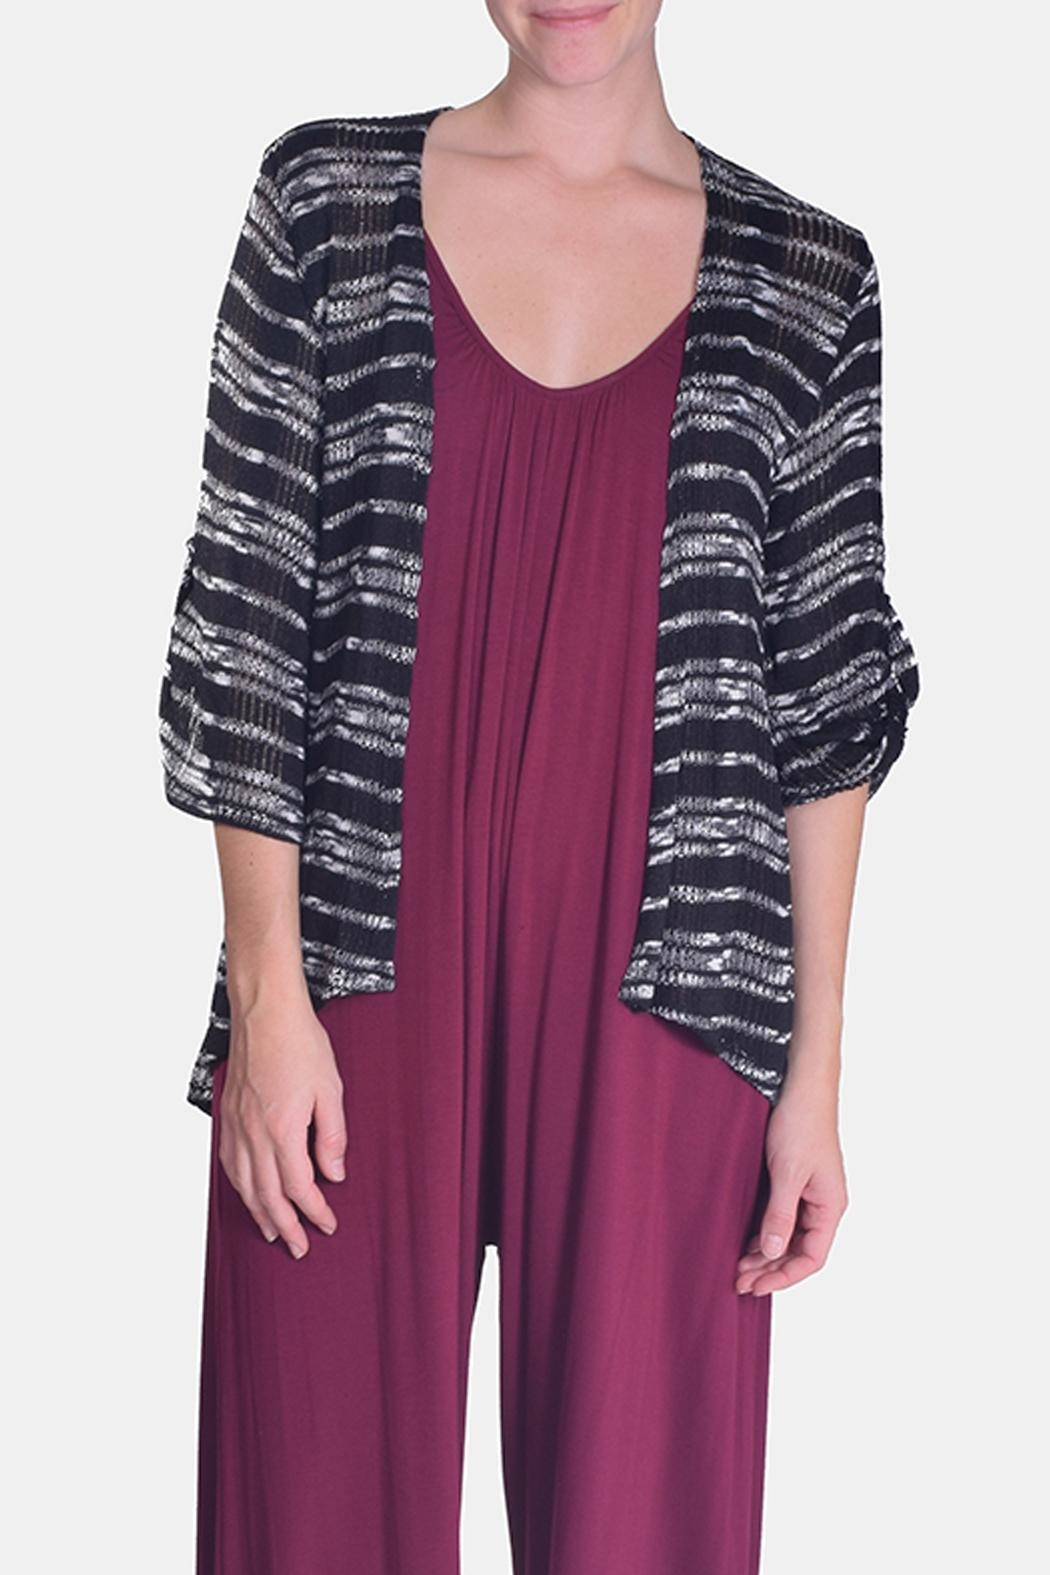 Chris & Carol Midnight Striped Cardigan - Main Image